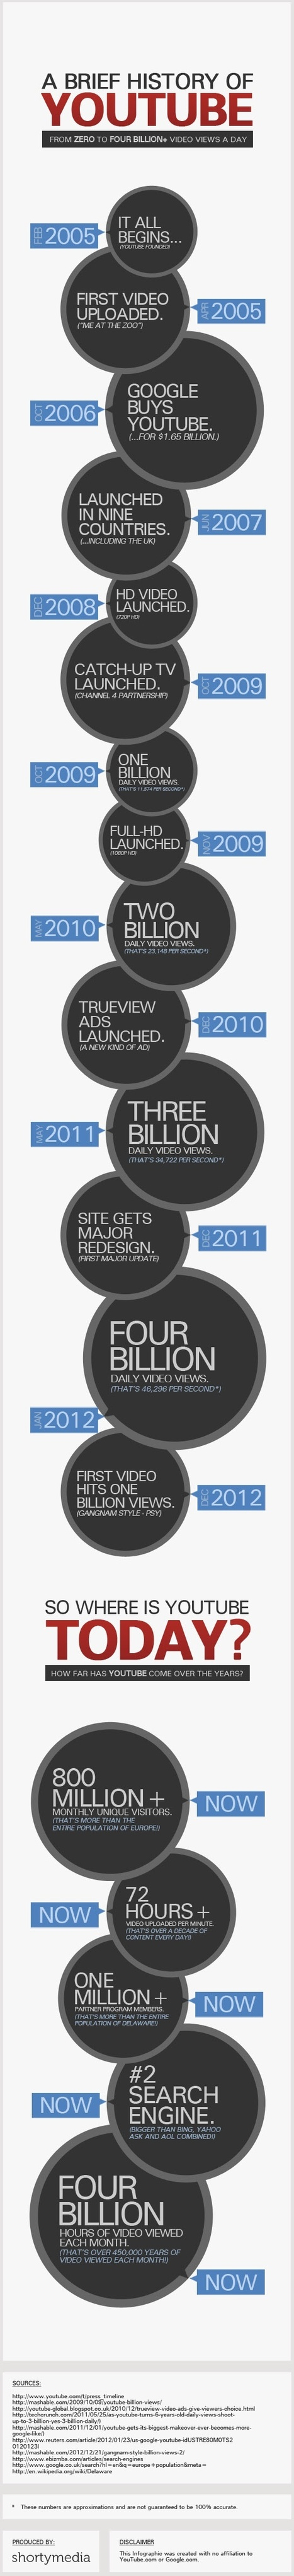 The Facts and Figures on YouTube in 2013 - Infographic | visualizing social media | Scoop.it